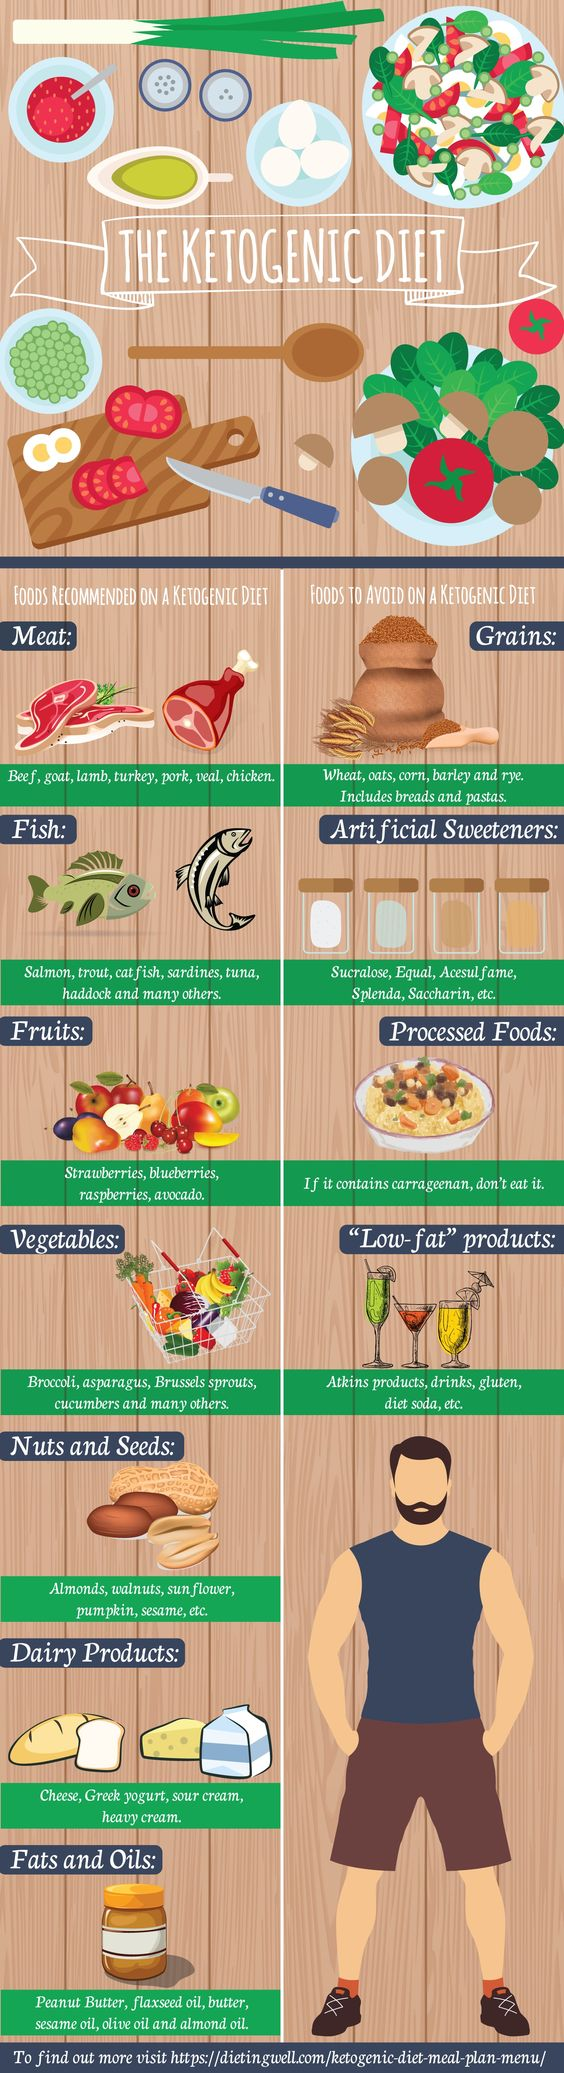 This is a detailed meal plan for the ketogenic, a high-fat, low-carbohydrate diet . Its benefits and a sample ketogenic diet meal plan and menu   https://dietingwell.com/ketogenic-diet-meal-plan-menu/